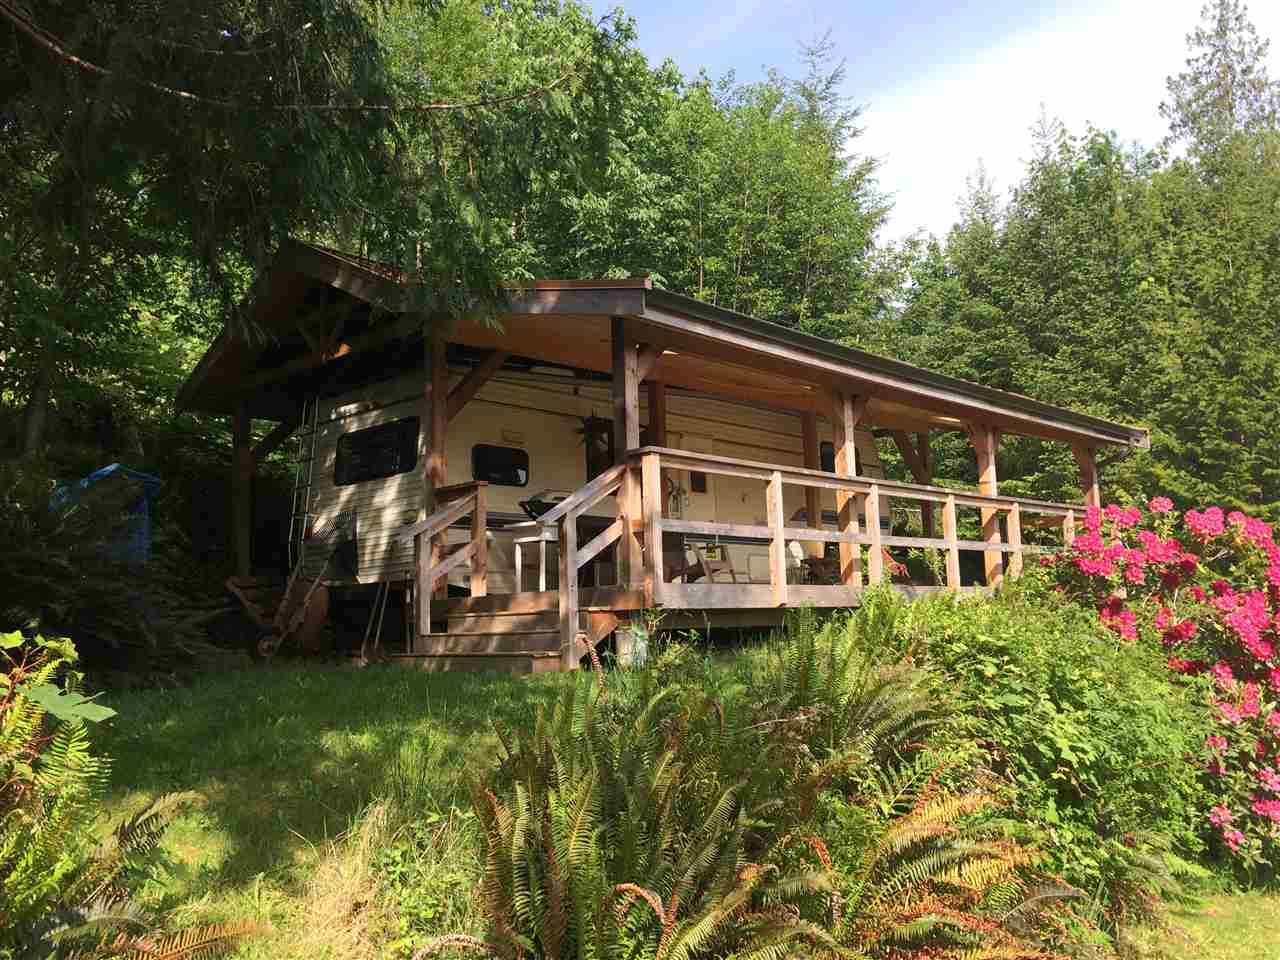 Photo 9: Photos: 4776 BEAR BAY Road in Pender Harbour: Pender Harbour Egmont Home for sale (Sunshine Coast)  : MLS® # R2065916